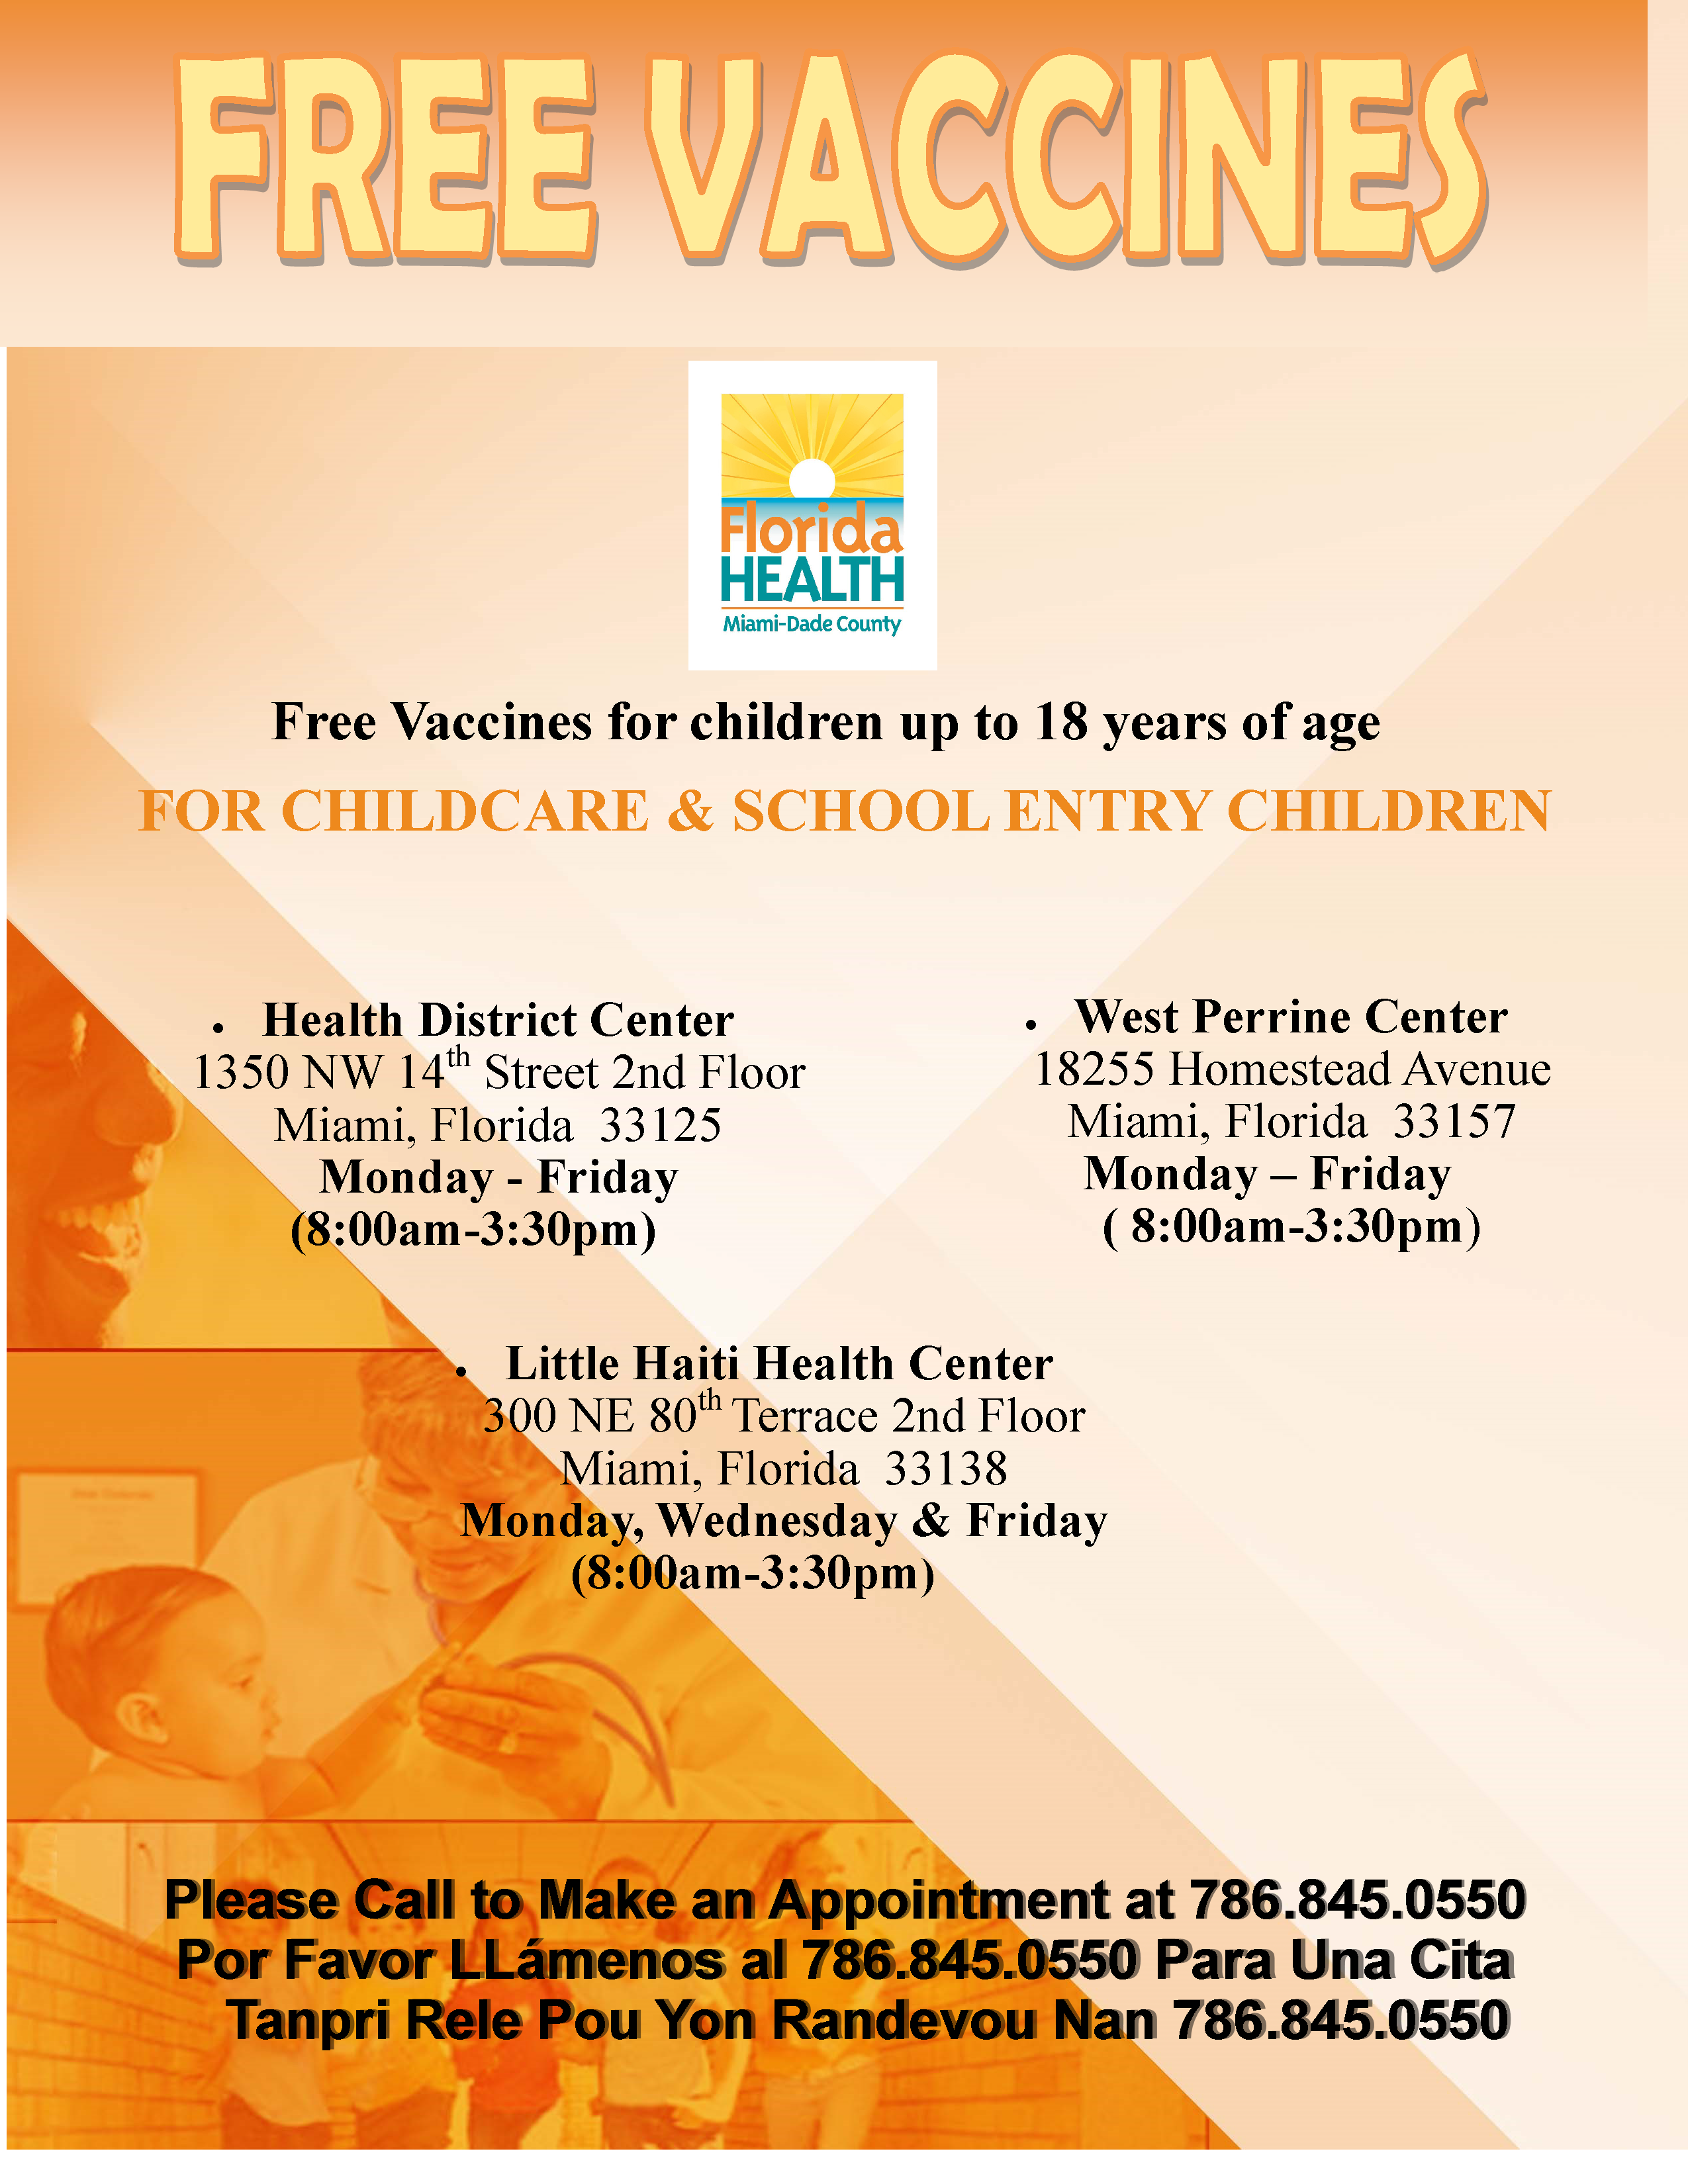 DEPARTMENT OF HEALTH FREE VACCINE 2018 FLYER_Page_1